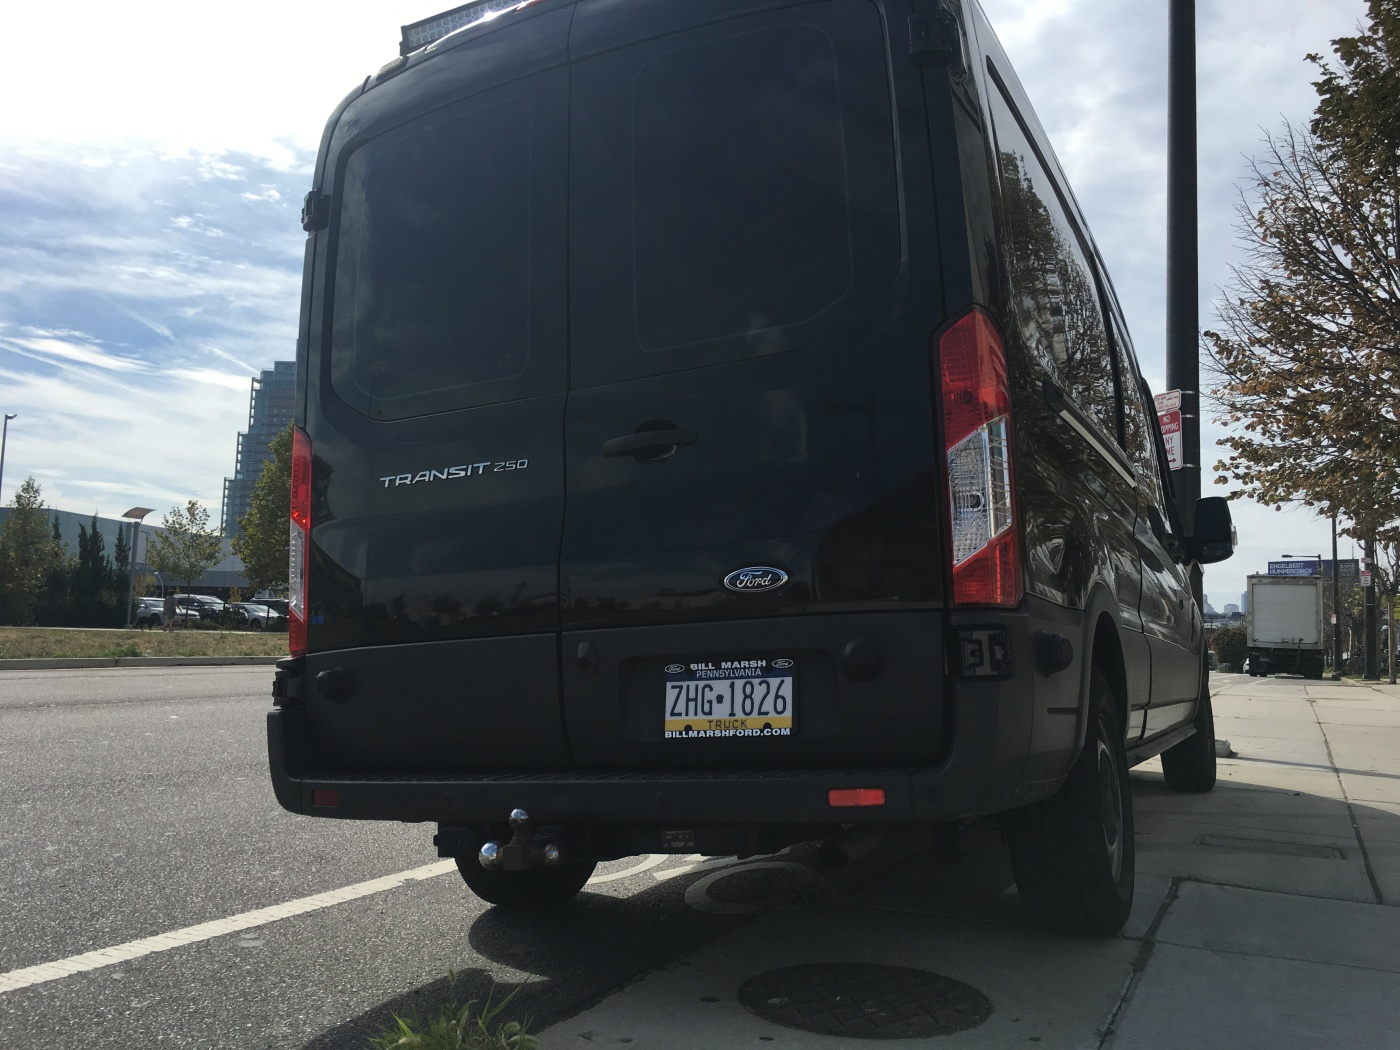 Van parks in a clearly marked bike lane along Delaware Ave. - Photo by Diana Shalenkova